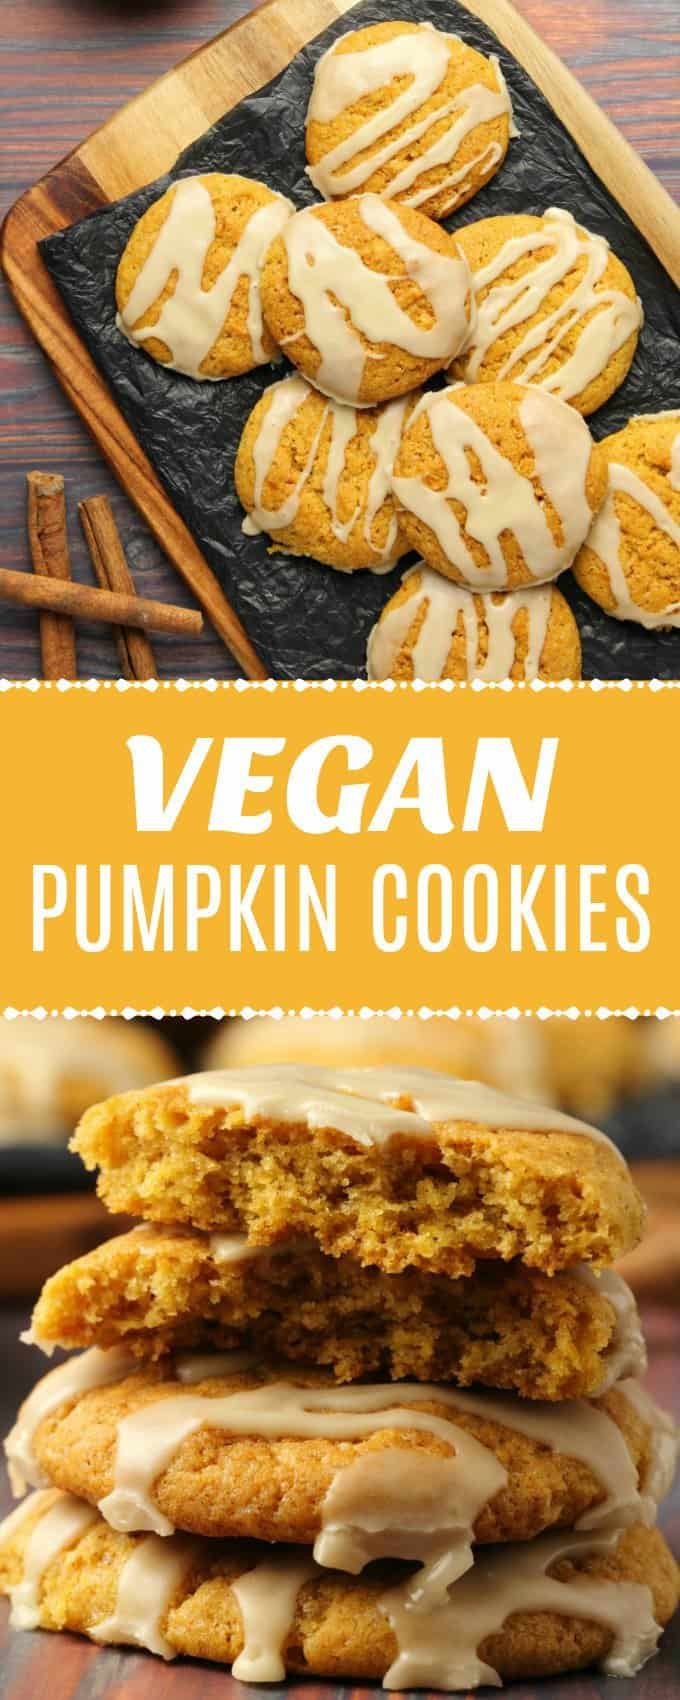 Beautifully soft vegan pumpkin cookies drizzled with a maple glaze. This simple recipe is perfectly spiced and perfect for fall!| lovingitvegan.com